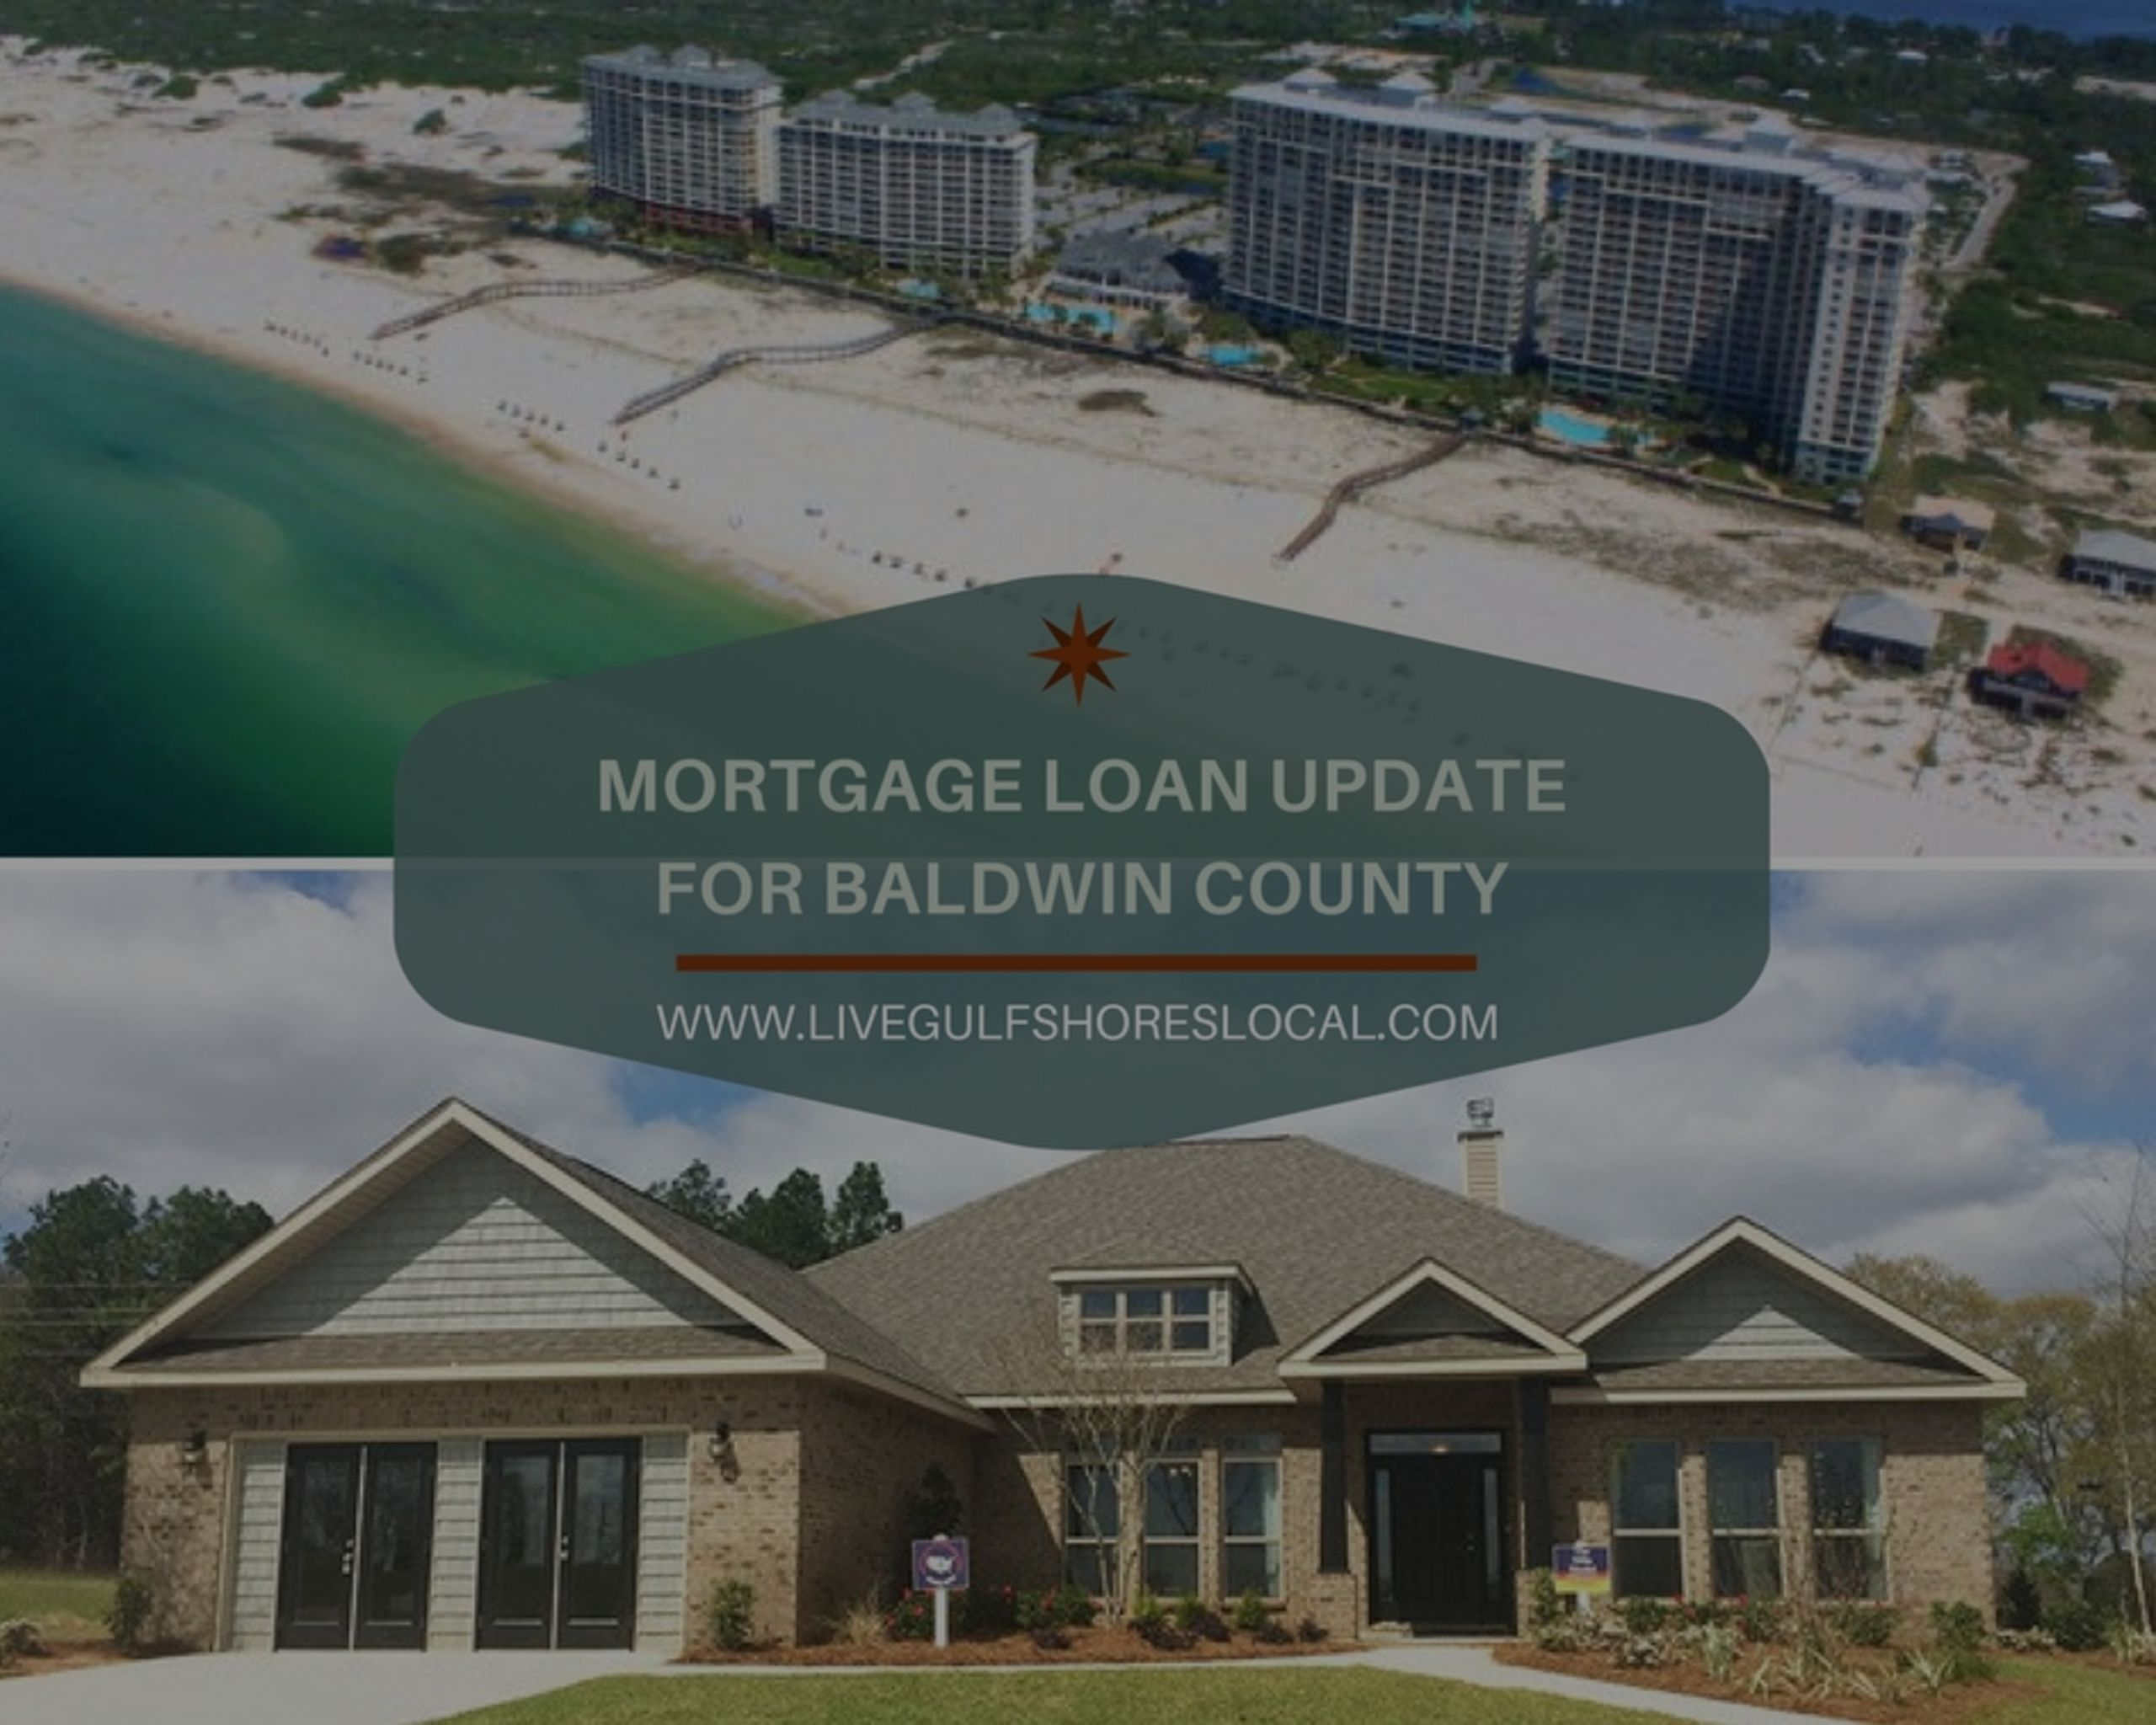 Mortgage Loan Update for Baldwin County – 6/3/18